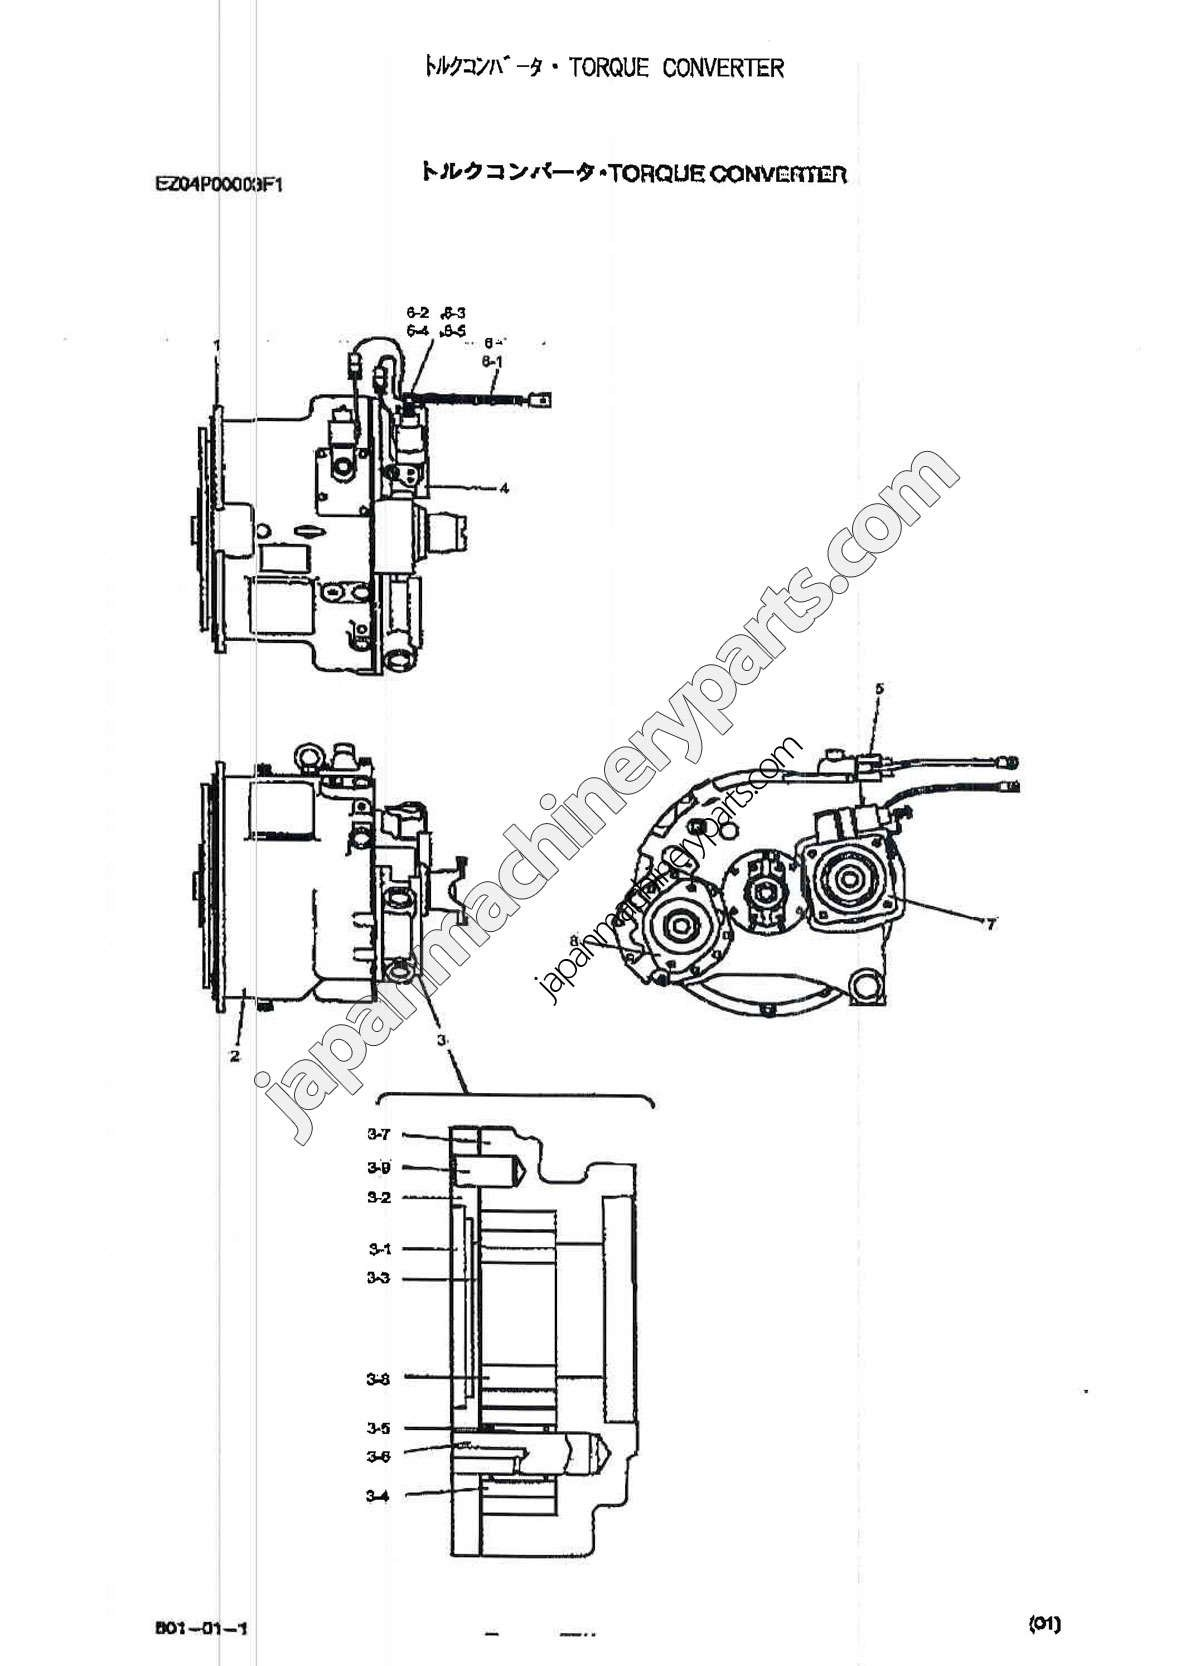 Torque Converter Diagram Parts for Kobelco Rk250 5 Of Torque Converter Diagram